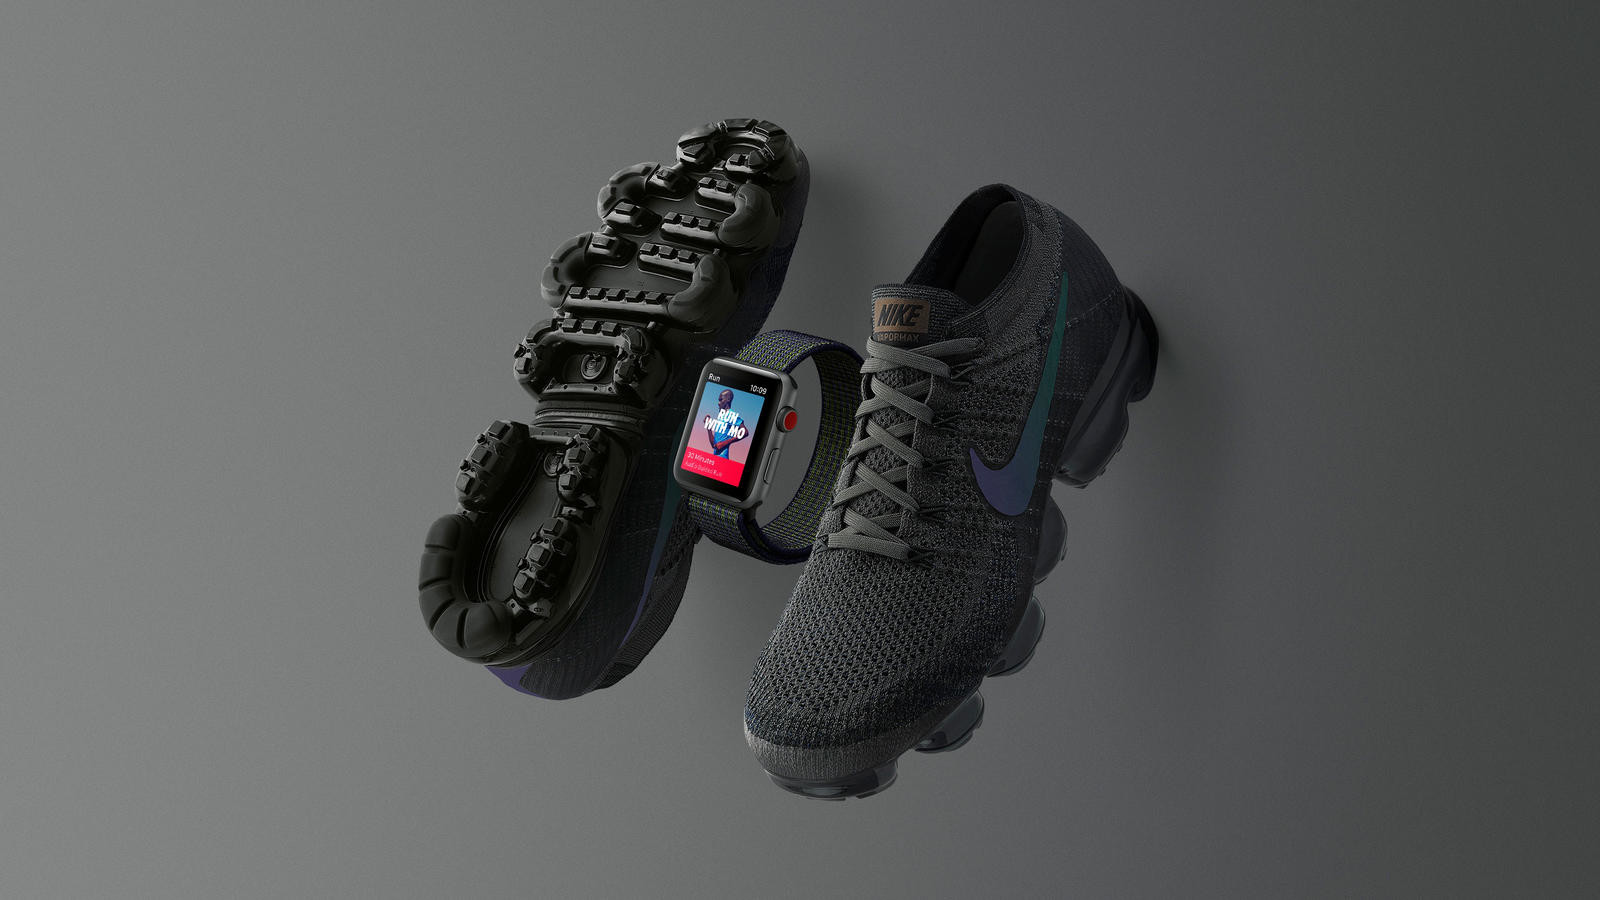 Nike launching limited edition Midnight Fog Apple Watch